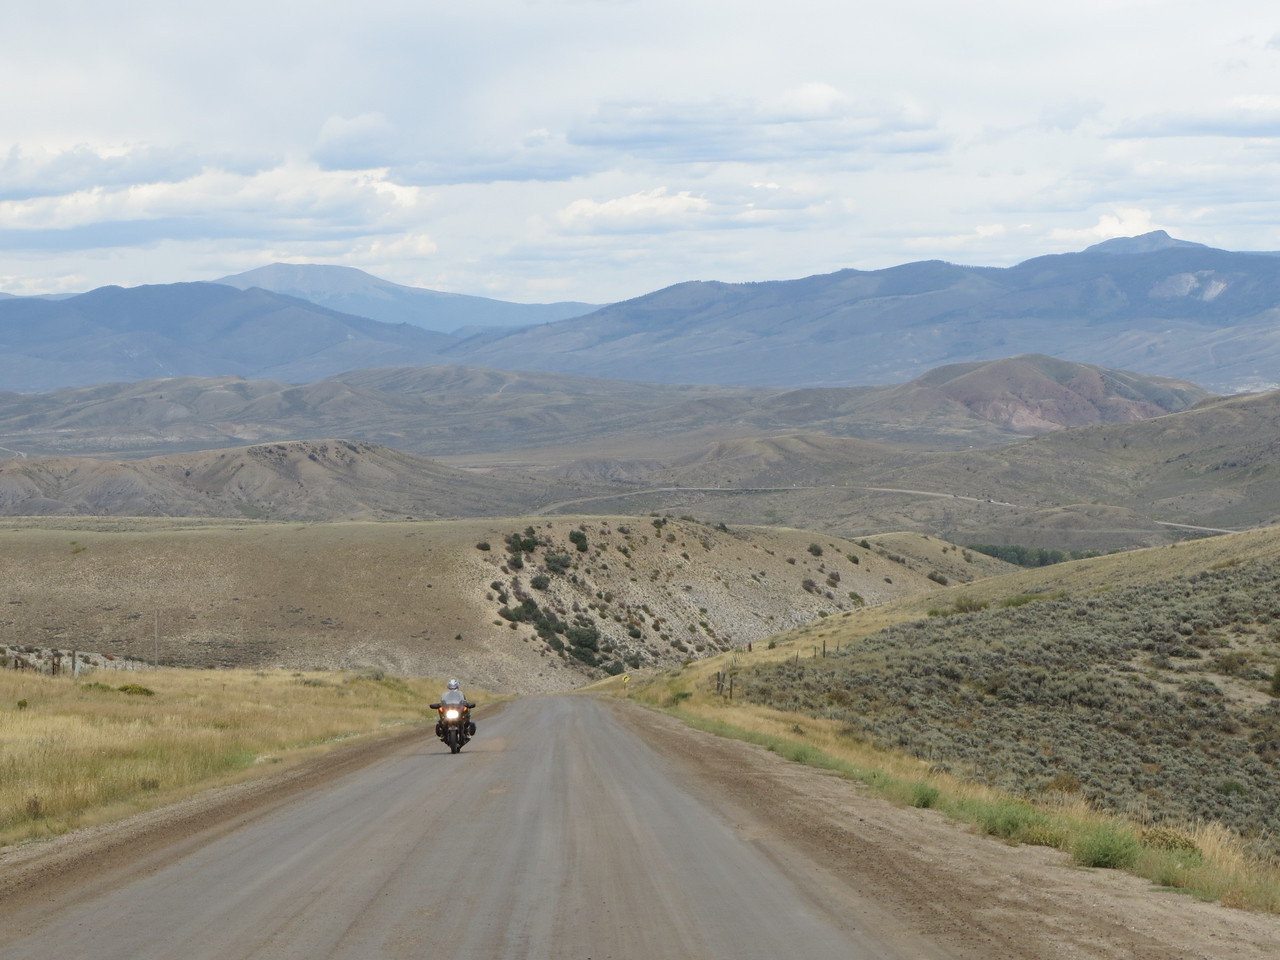 Day 3 (363 miles): Colorado River Headwaters Scenic Byway